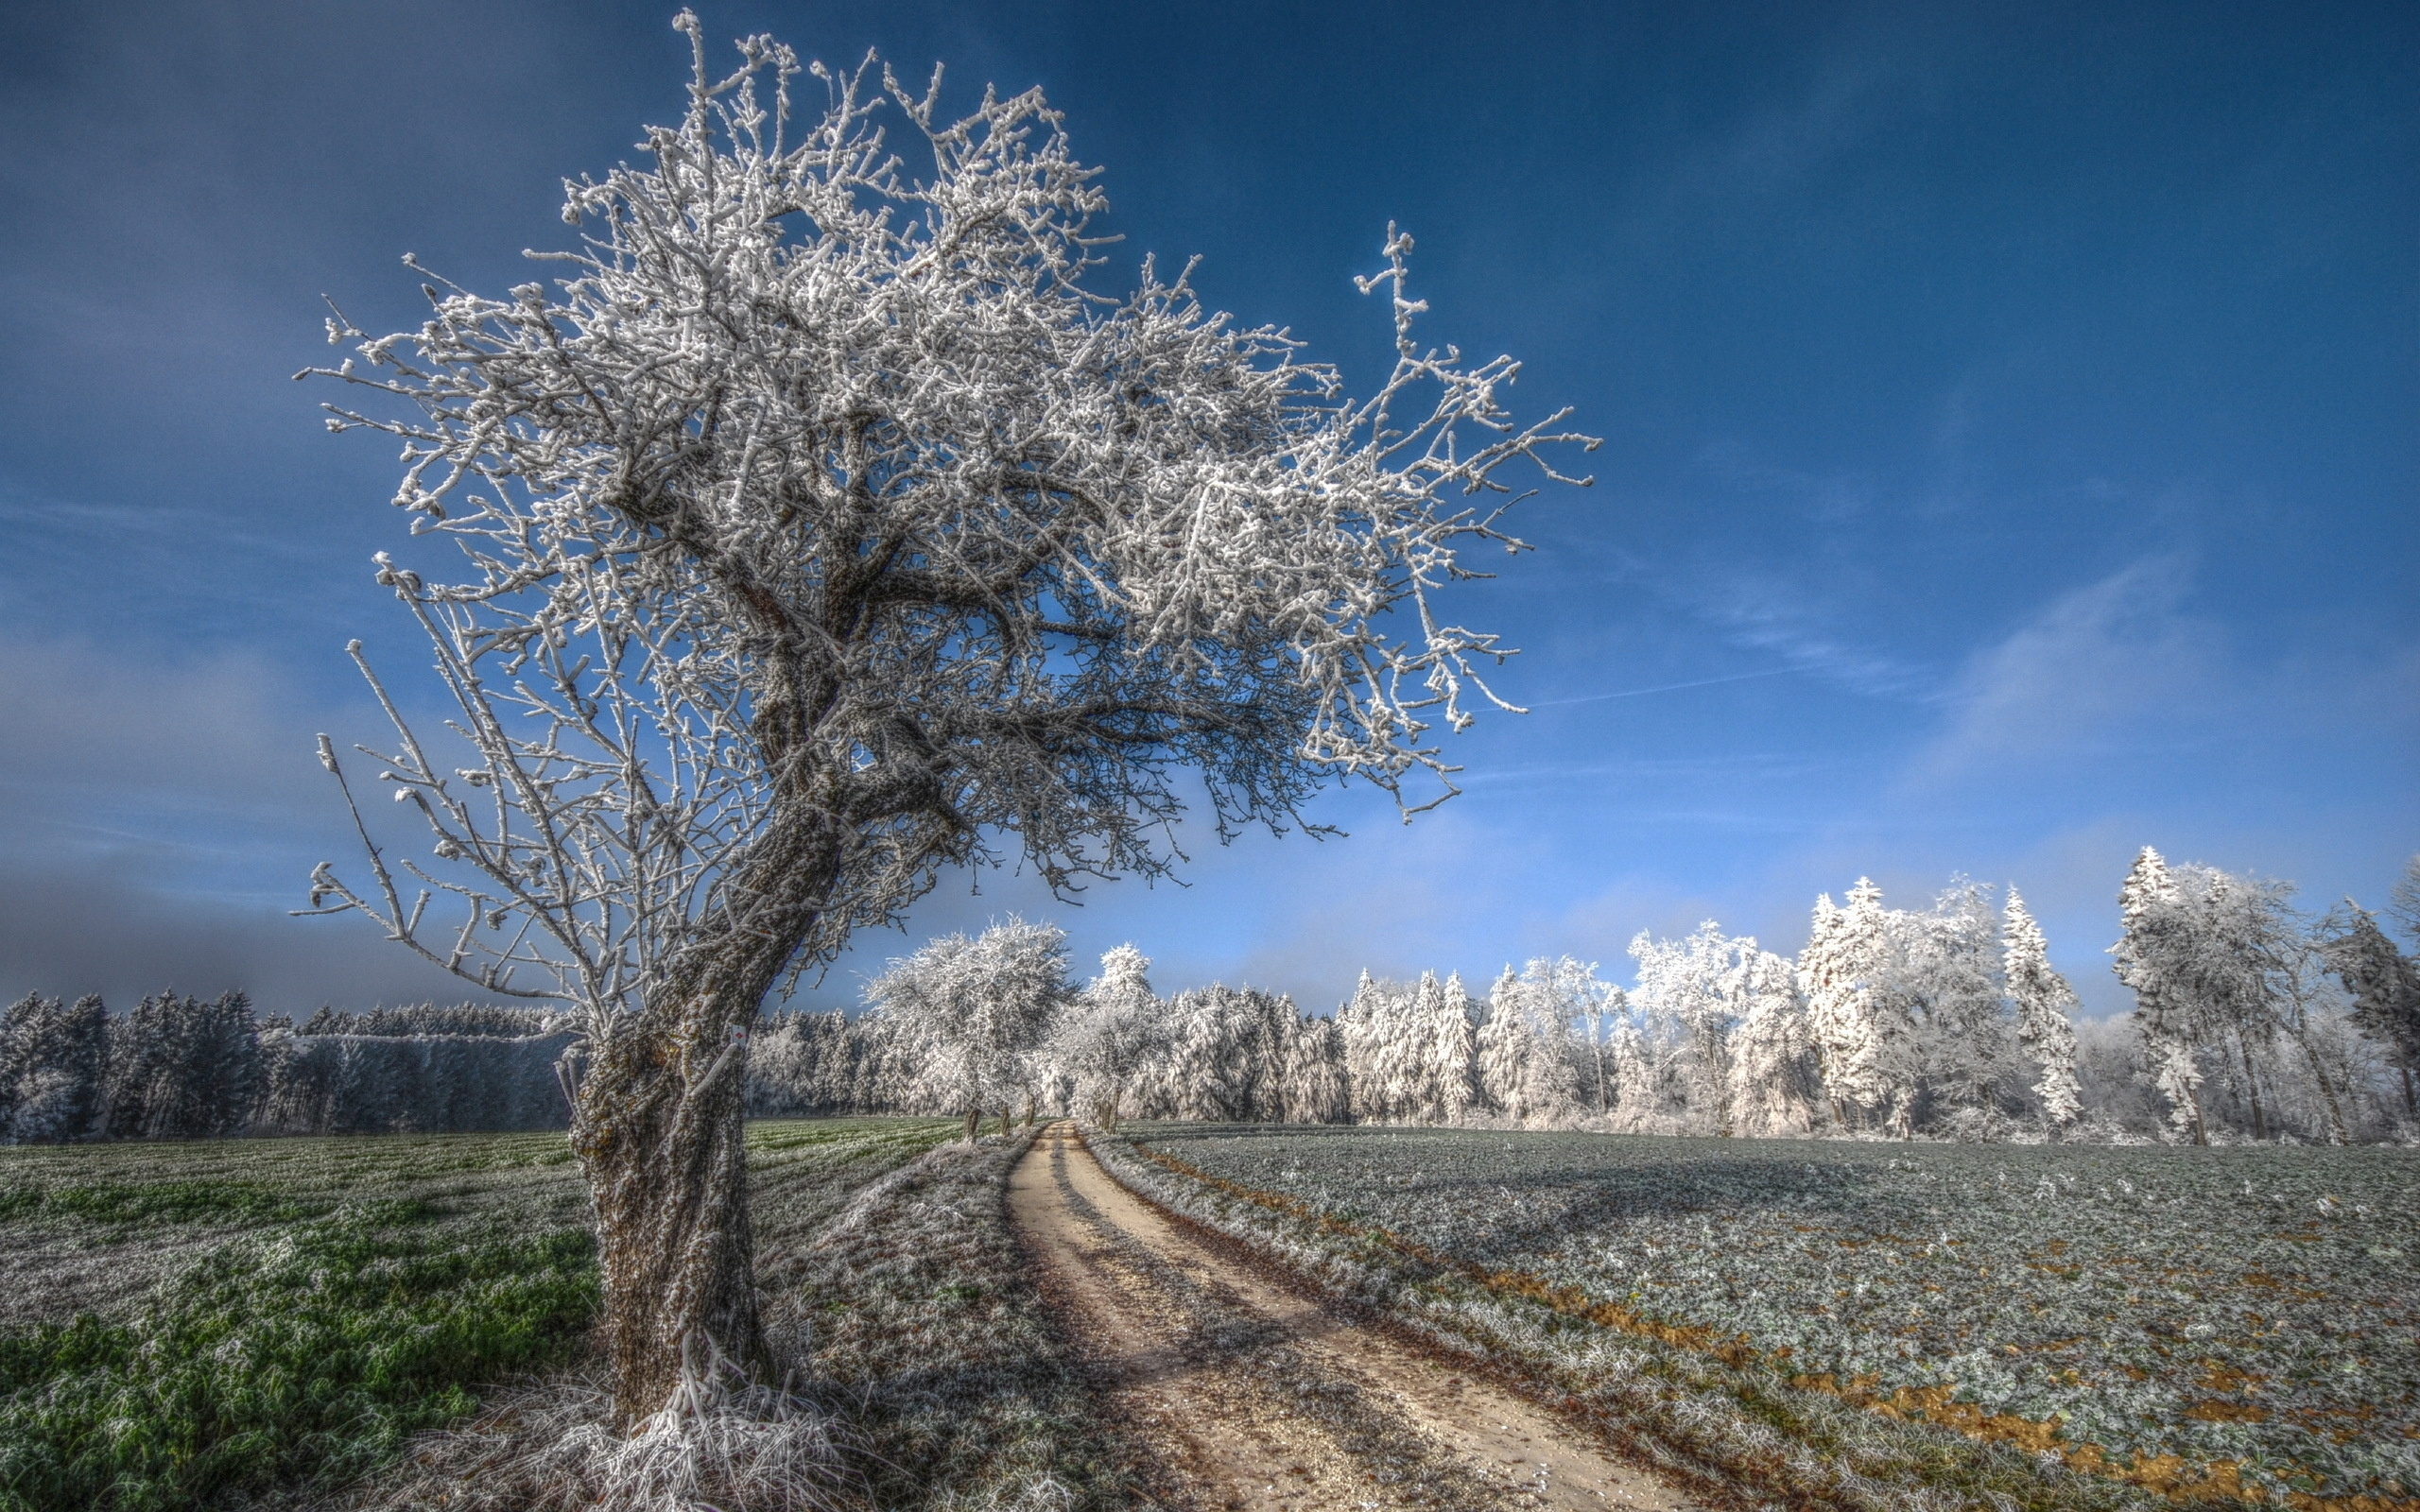 Late Fall Wallpaper Fond D 233 Cran Arbre Route Givre Cheveux Gris Du Froid